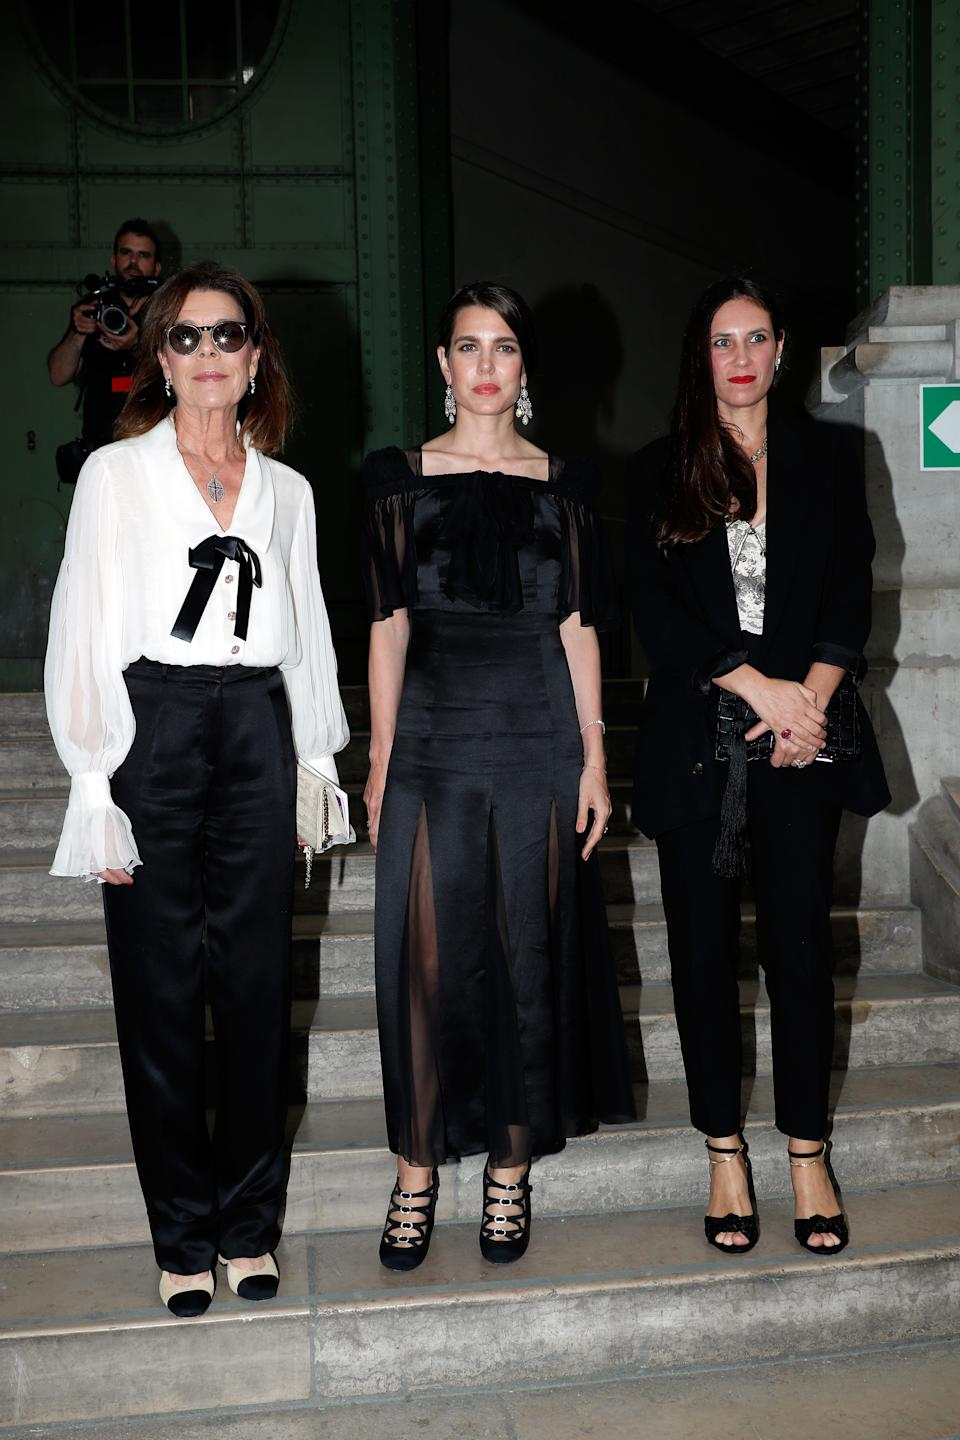 """PARIS, FRANCE - JUNE 20: Caroline de Hanovre, her daughter Charlotte Casiraghi Rassam and her daughter in Law Tatiana Santo-Domingo Casiraghi attend """"Karl for Ever"""" Tribute to Karl Lagerfeld  at Grand Palais on June 20, 2019 in Paris, France. (Photo by Bertrand Rindoff Petroff/Getty Images)"""